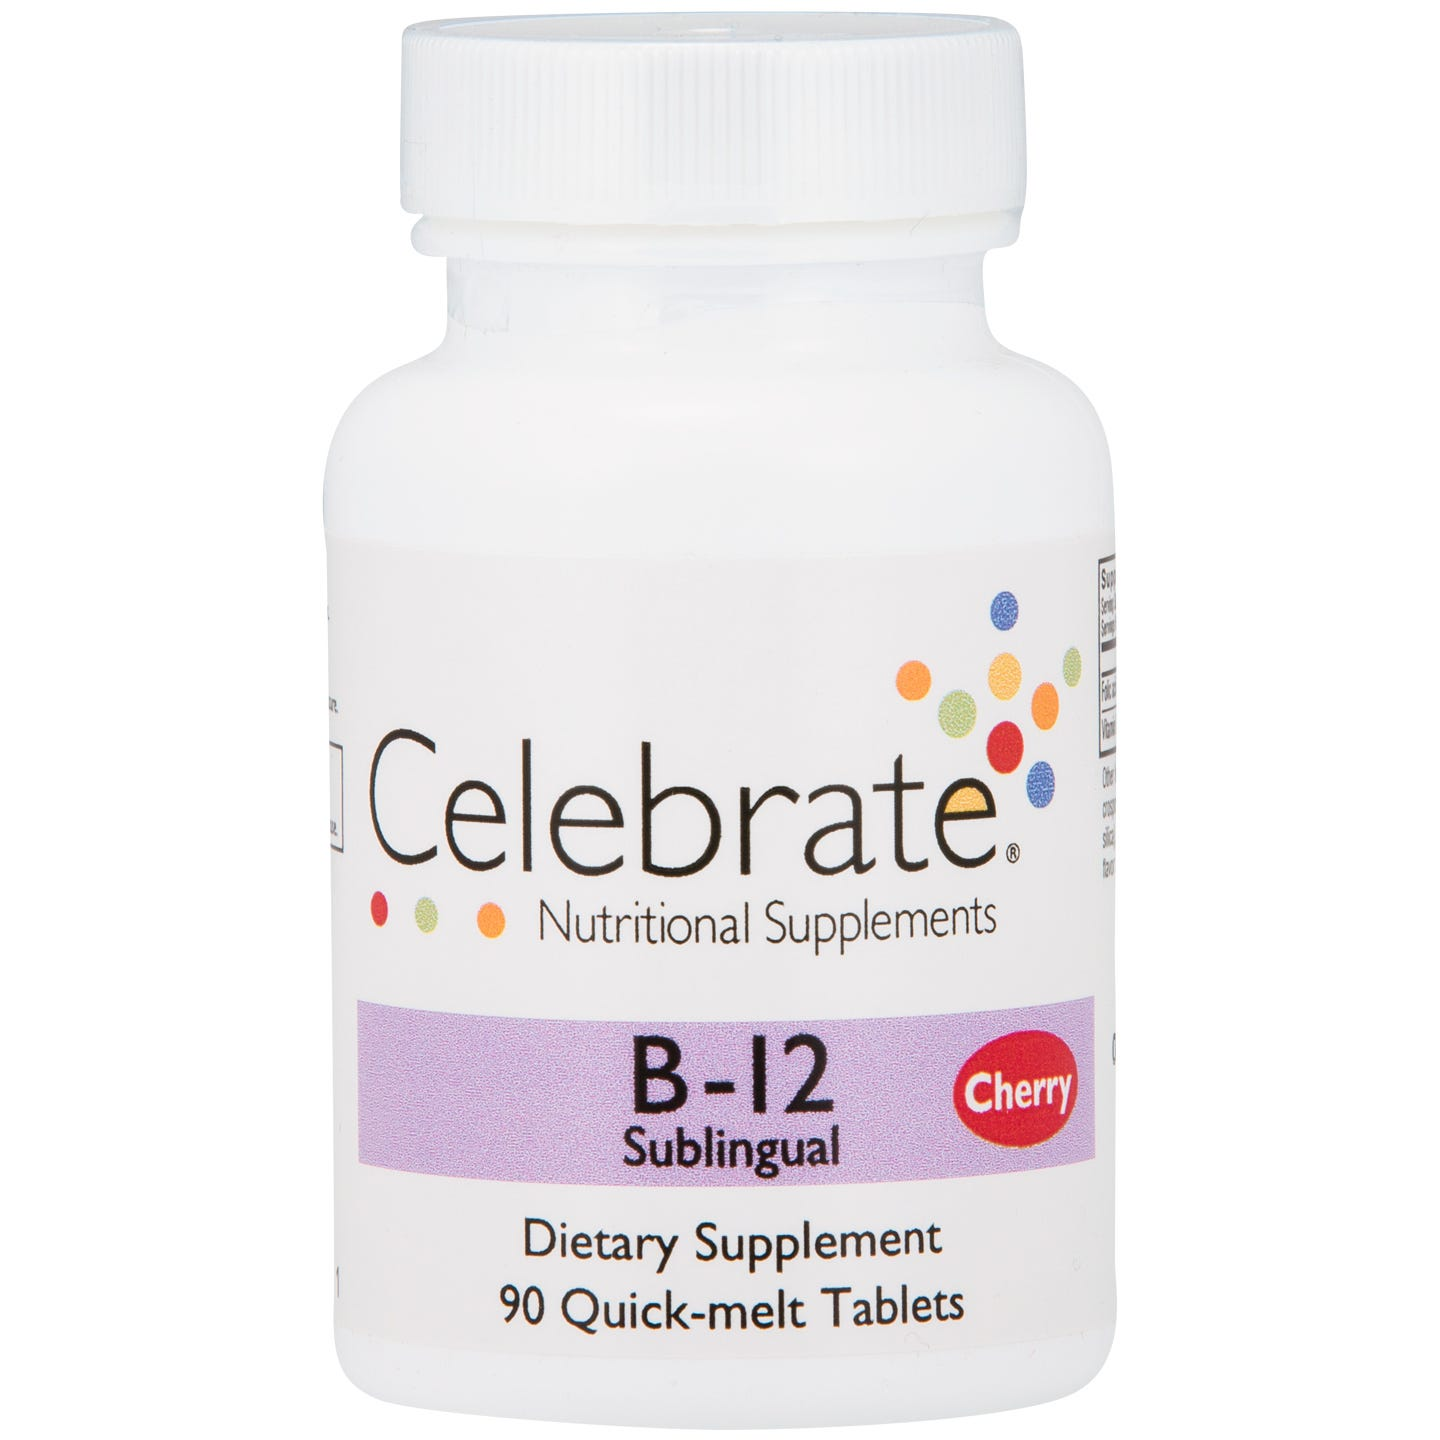 B12 Sublingual Cherry (90 ct) - Celebrate - Rapid Diet Weight Loss Products Shop